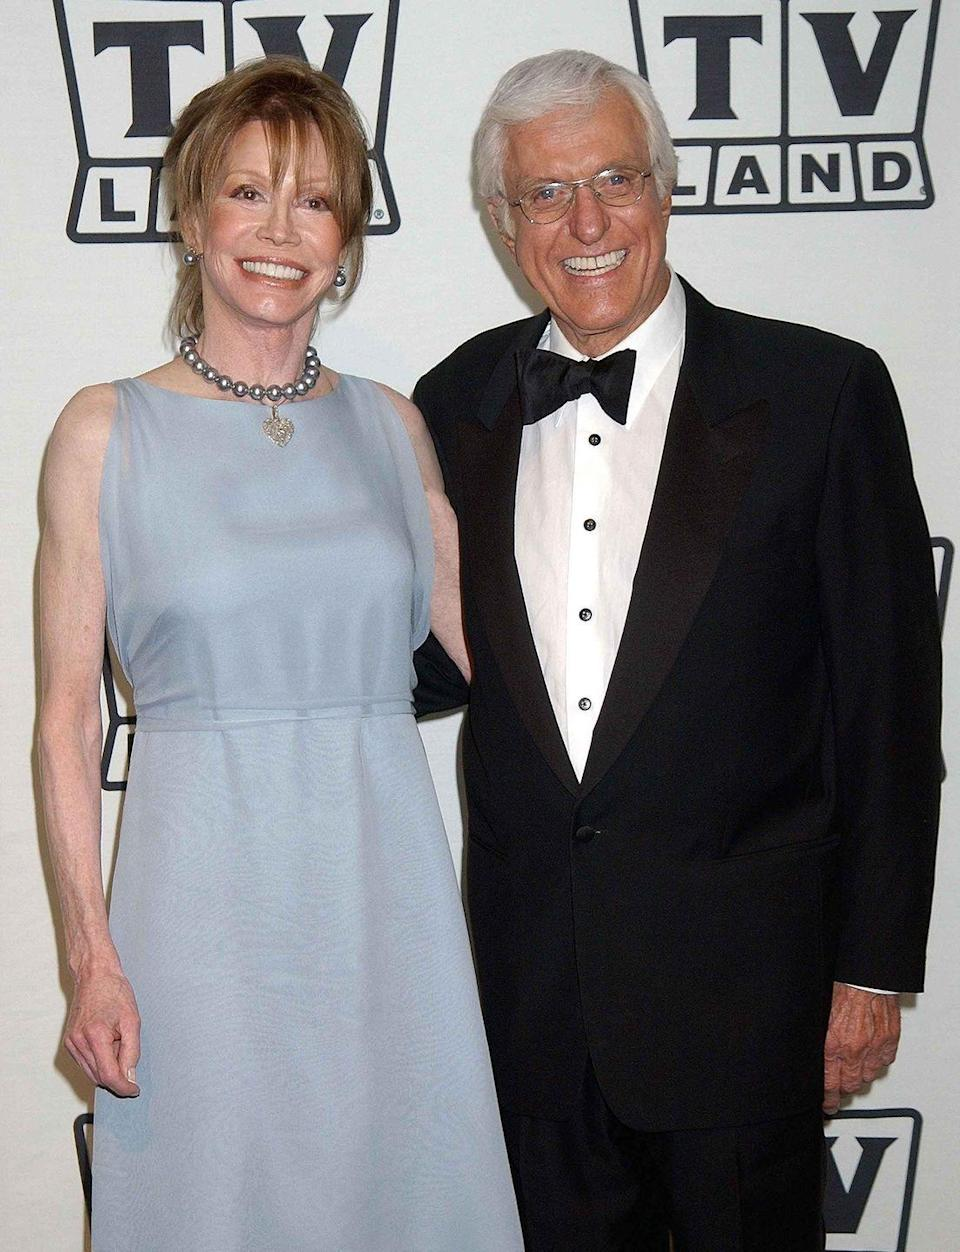 <p>Moore and Van Dyke attend the TV Land Awards.</p>